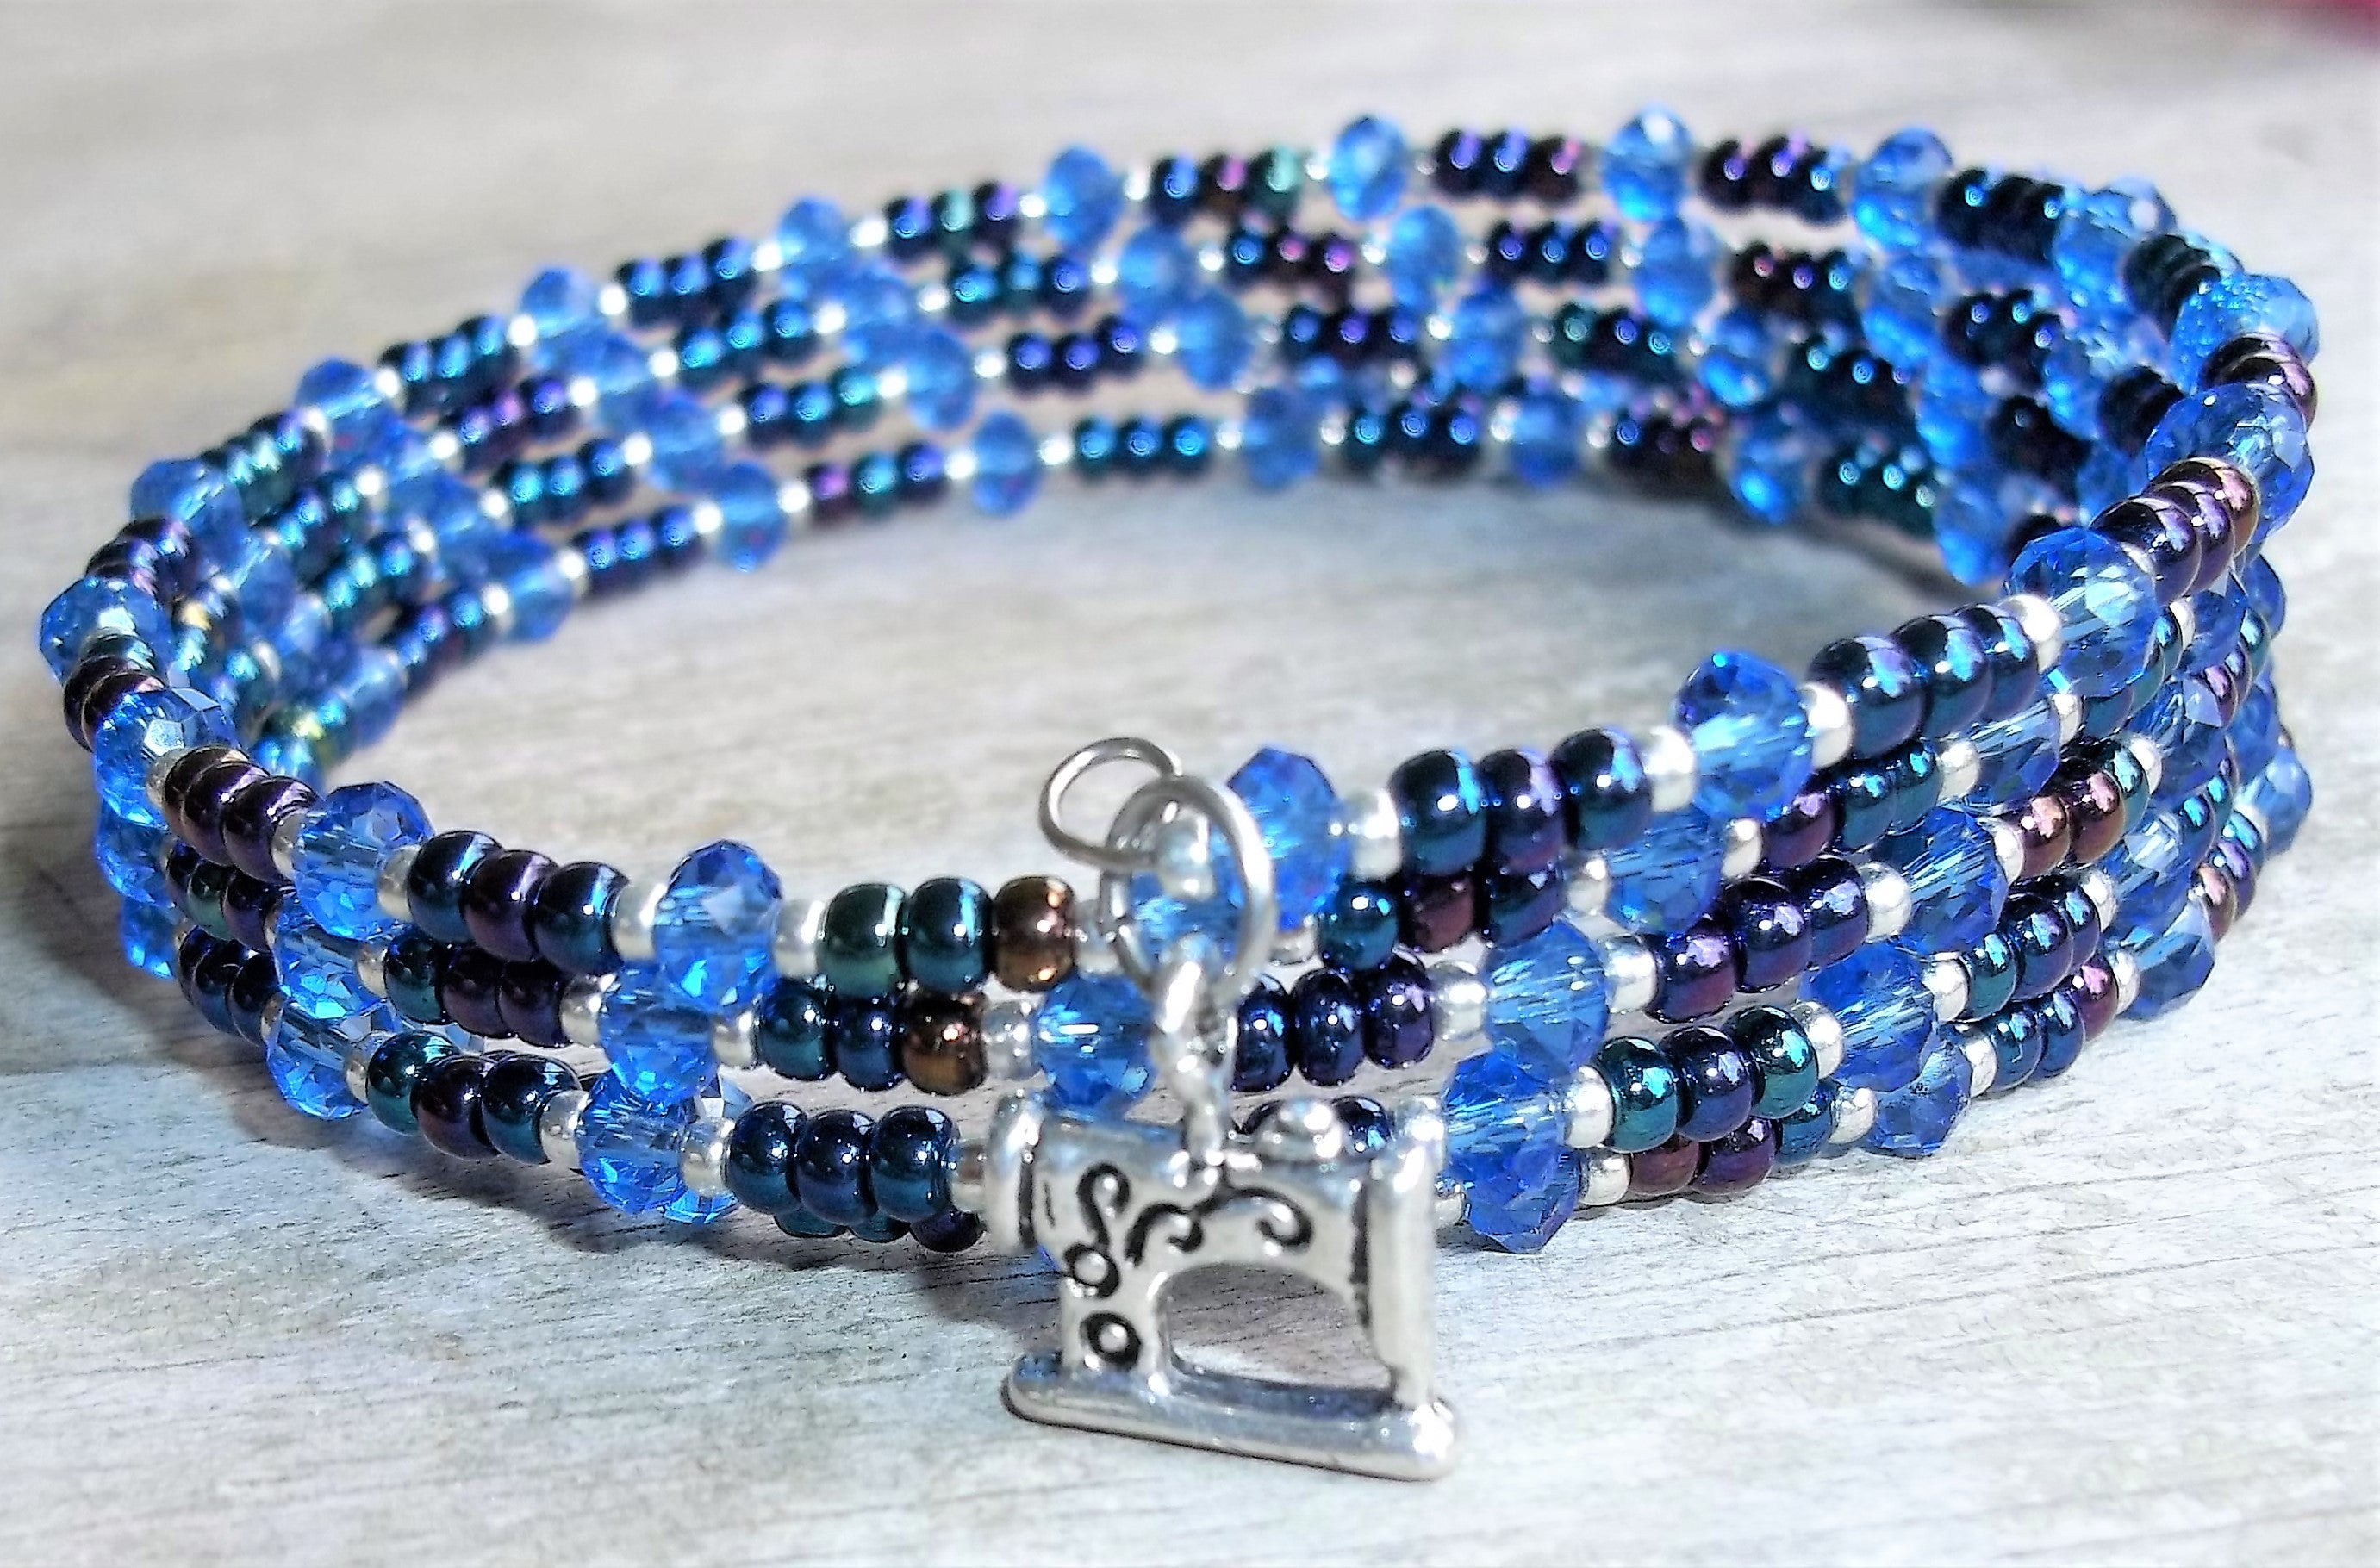 Plus Size Elegance Sewing Machine I Love to Sew Blue Crystal & Rainbow Glass Beaded Wrap Bracelet w/ Tassel,  Seamstress Bracelet, Quilter's Bracelet, Gift for Her